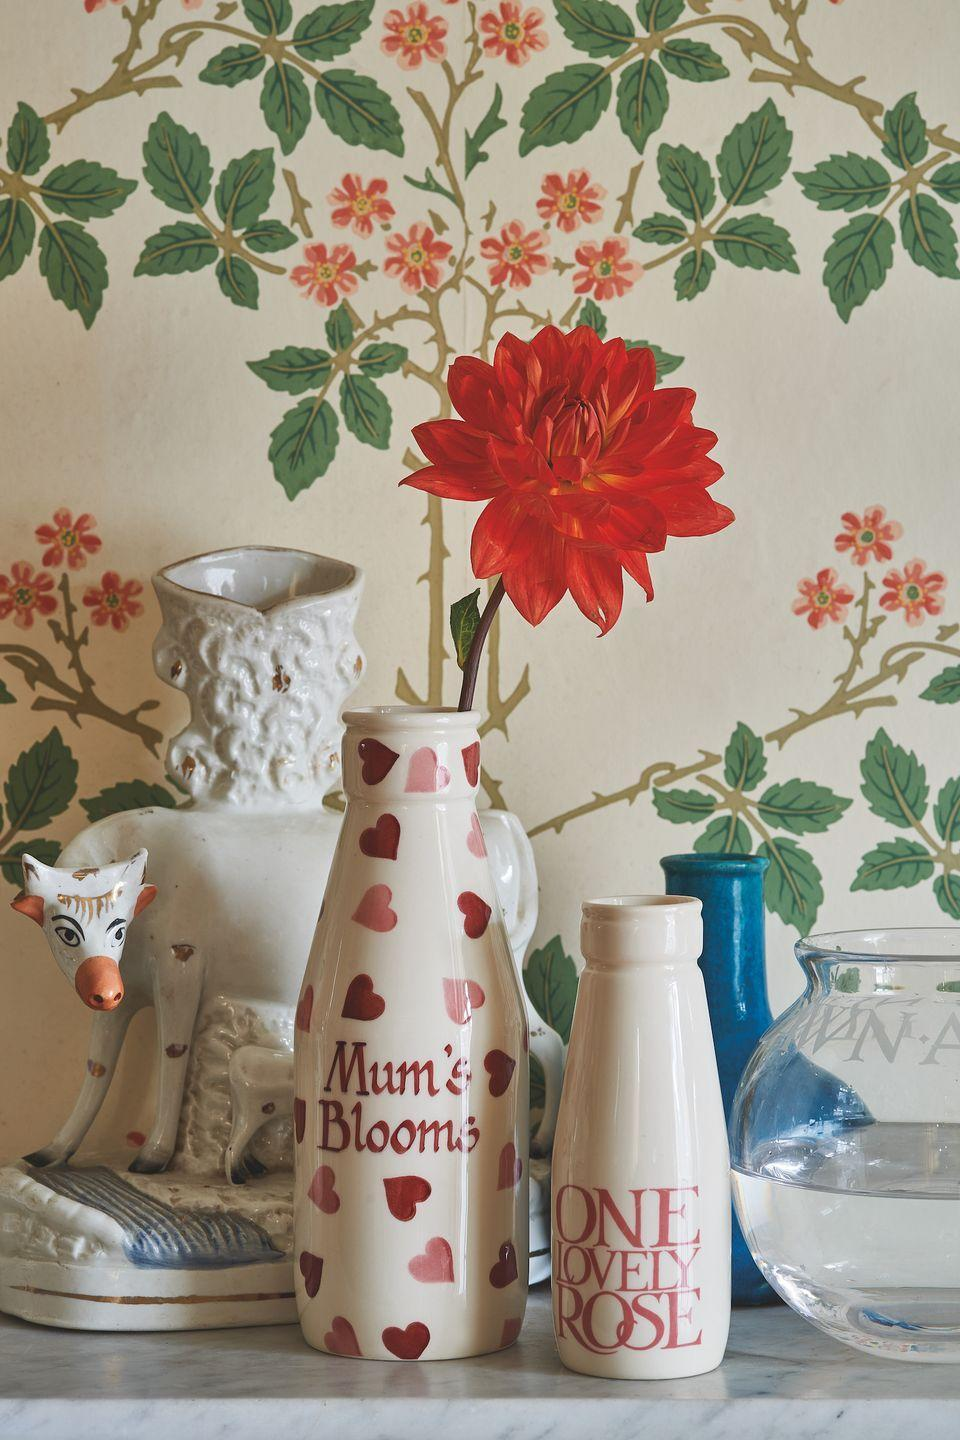 """<p>On the hunt for a Mother's Day must-have? We've got this beautiful 'Mum's Blooms' vase right at the top of our list...</p><p><a class=""""link rapid-noclick-resp"""" href=""""https://go.redirectingat.com?id=127X1599956&url=https%3A%2F%2Fwww.emmabridgewater.co.uk%2Fcollections%2Fnew&sref=https%3A%2F%2Fwww.countryliving.com%2Fuk%2Fhomes-interiors%2Finteriors%2Fg35249240%2Femma-bridgewater-spring%2F"""" rel=""""nofollow noopener"""" target=""""_blank"""" data-ylk=""""slk:BUY NOW"""">BUY NOW</a></p>"""